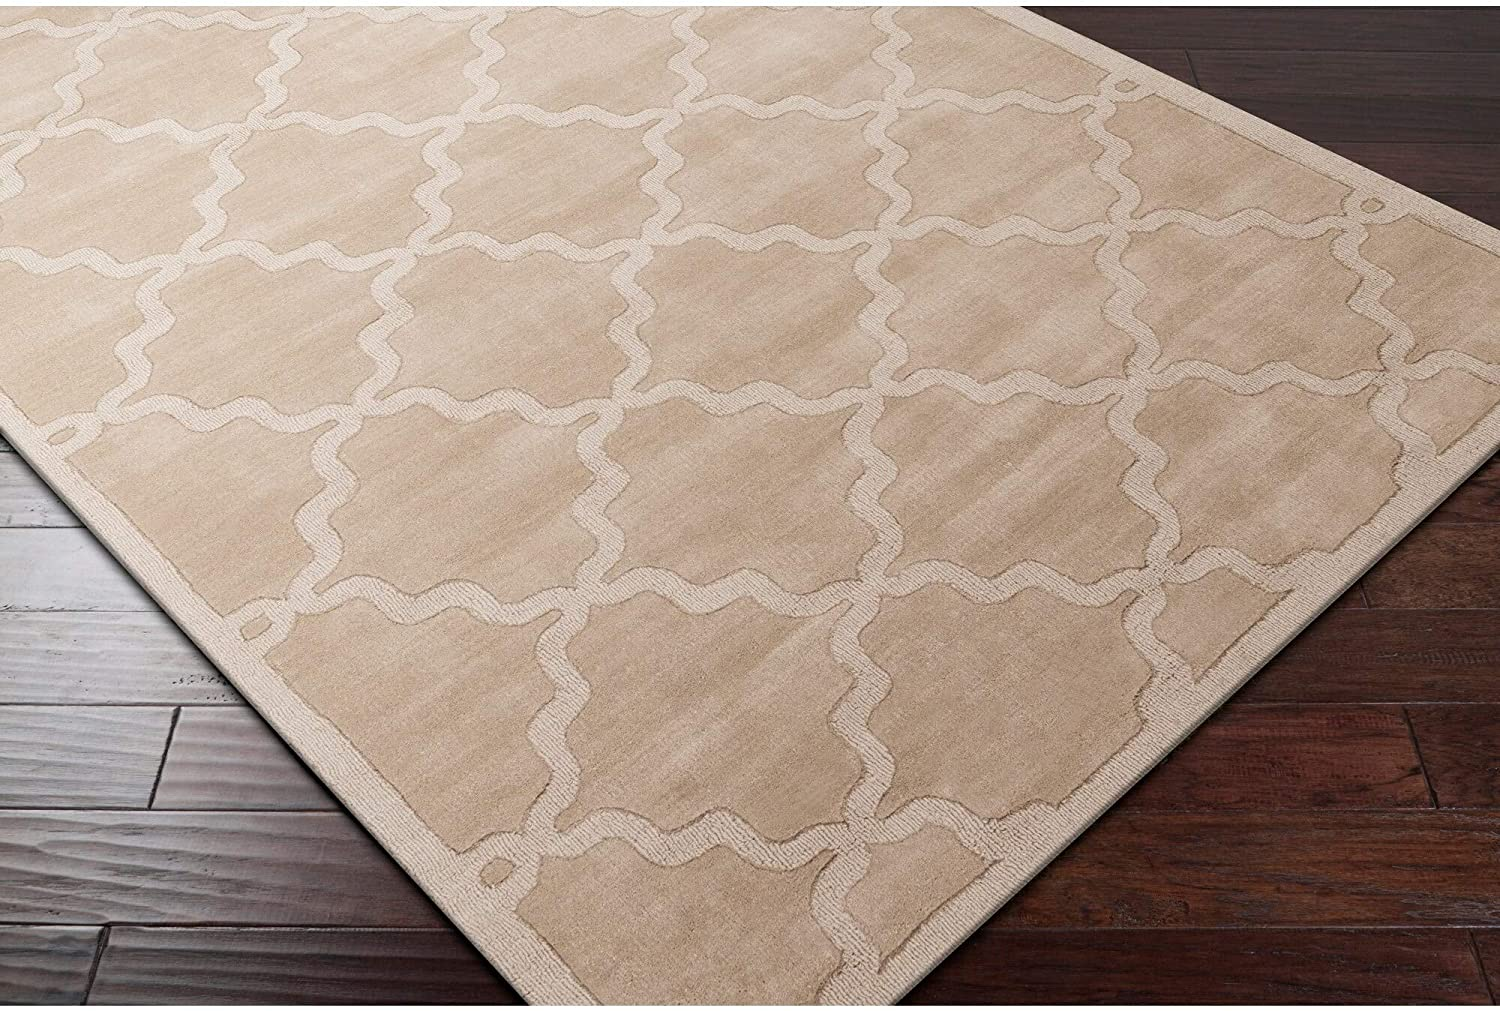 Hand Woven Amy Tone Tone Lattice Wool Area Rug 10' X 14' Brown Geometric Modern Contemporary Rectangle Latex Free